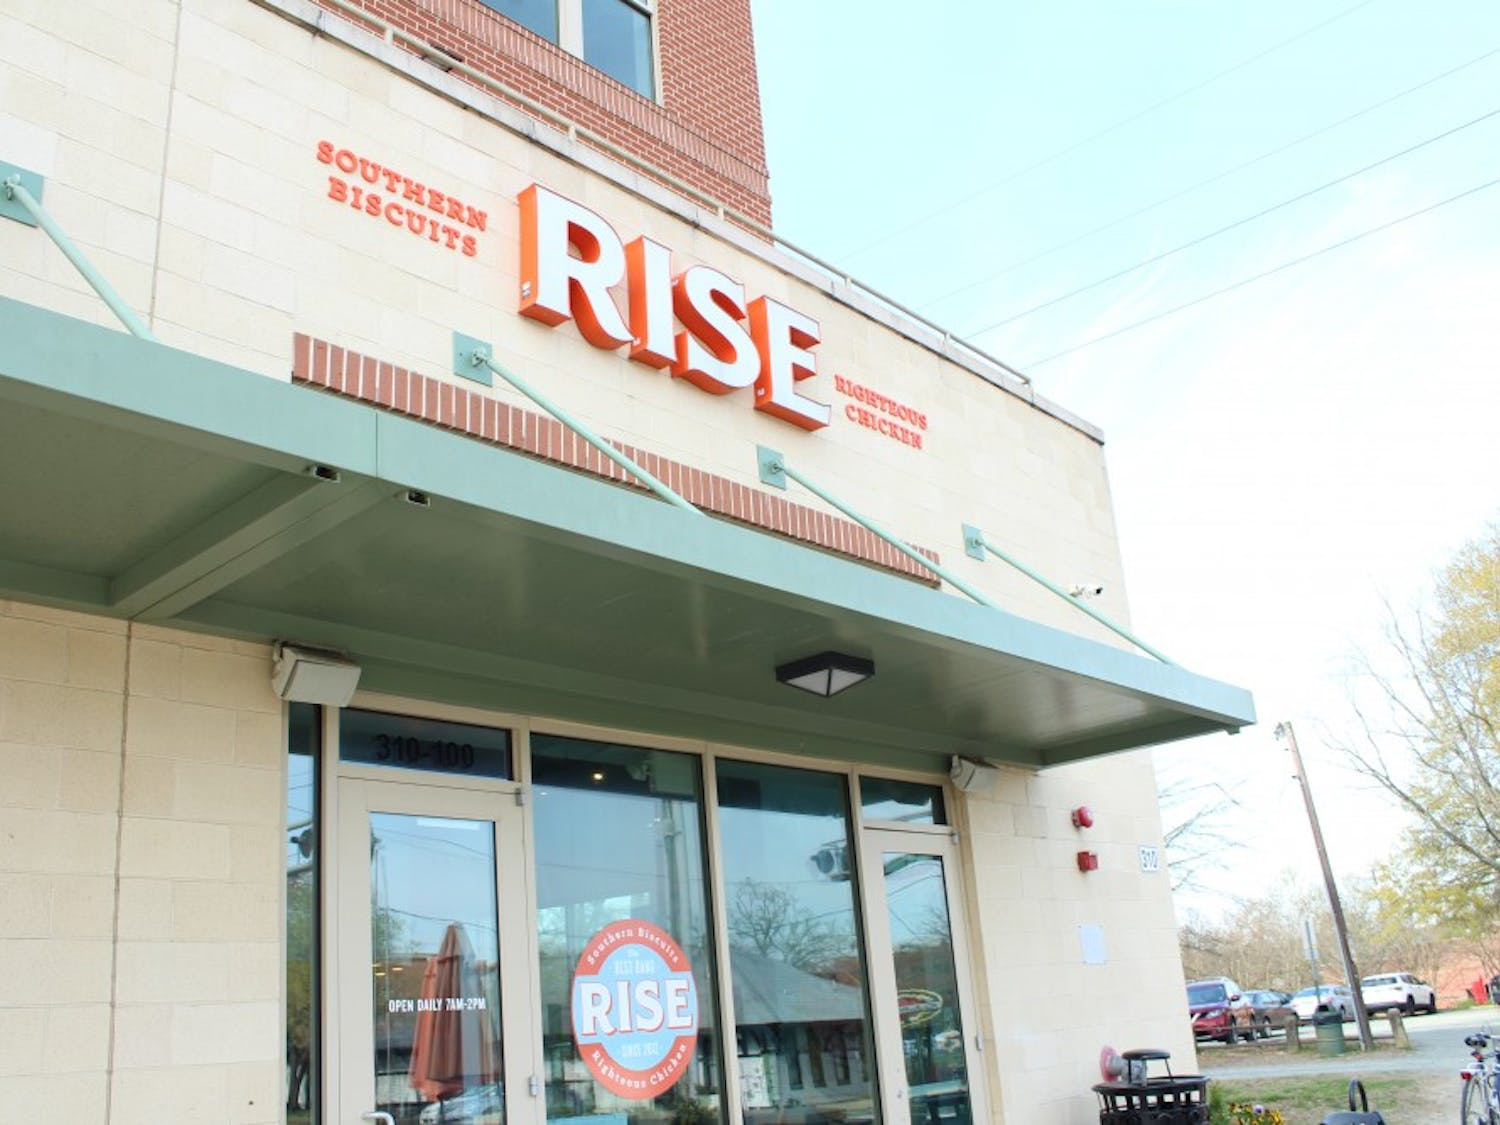 Rise Biscuits, a local chain of breakfast restaurants, is rebranding.